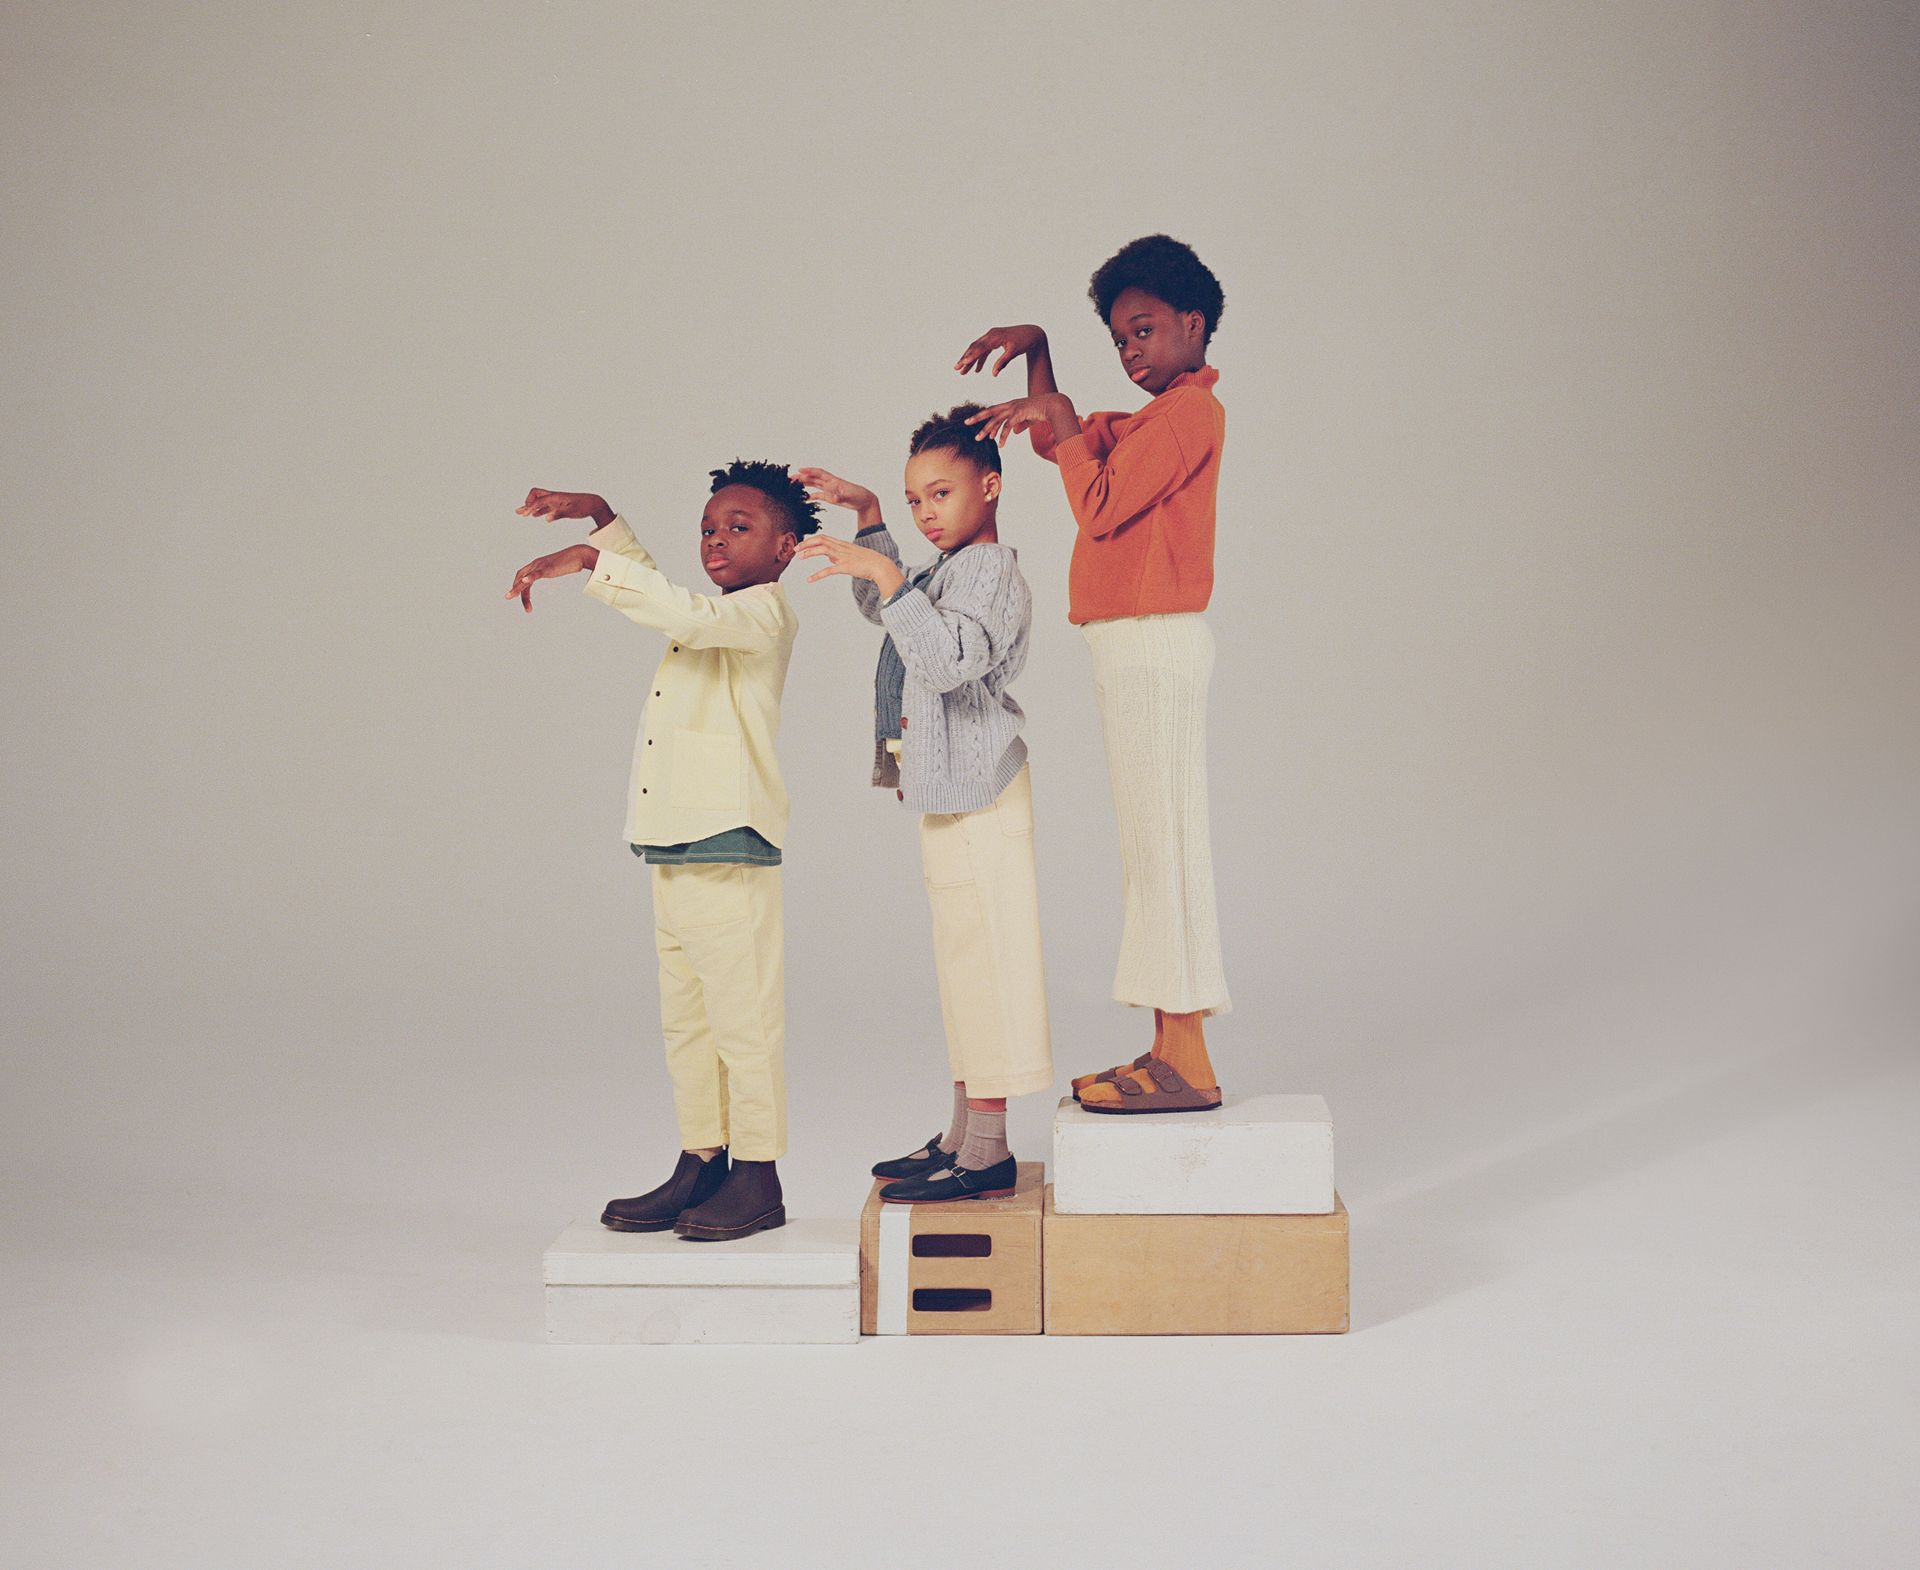 Three bipoc kids standing in line and sideways on apple boxes and doing funny mimics with their hands for a shadow show.